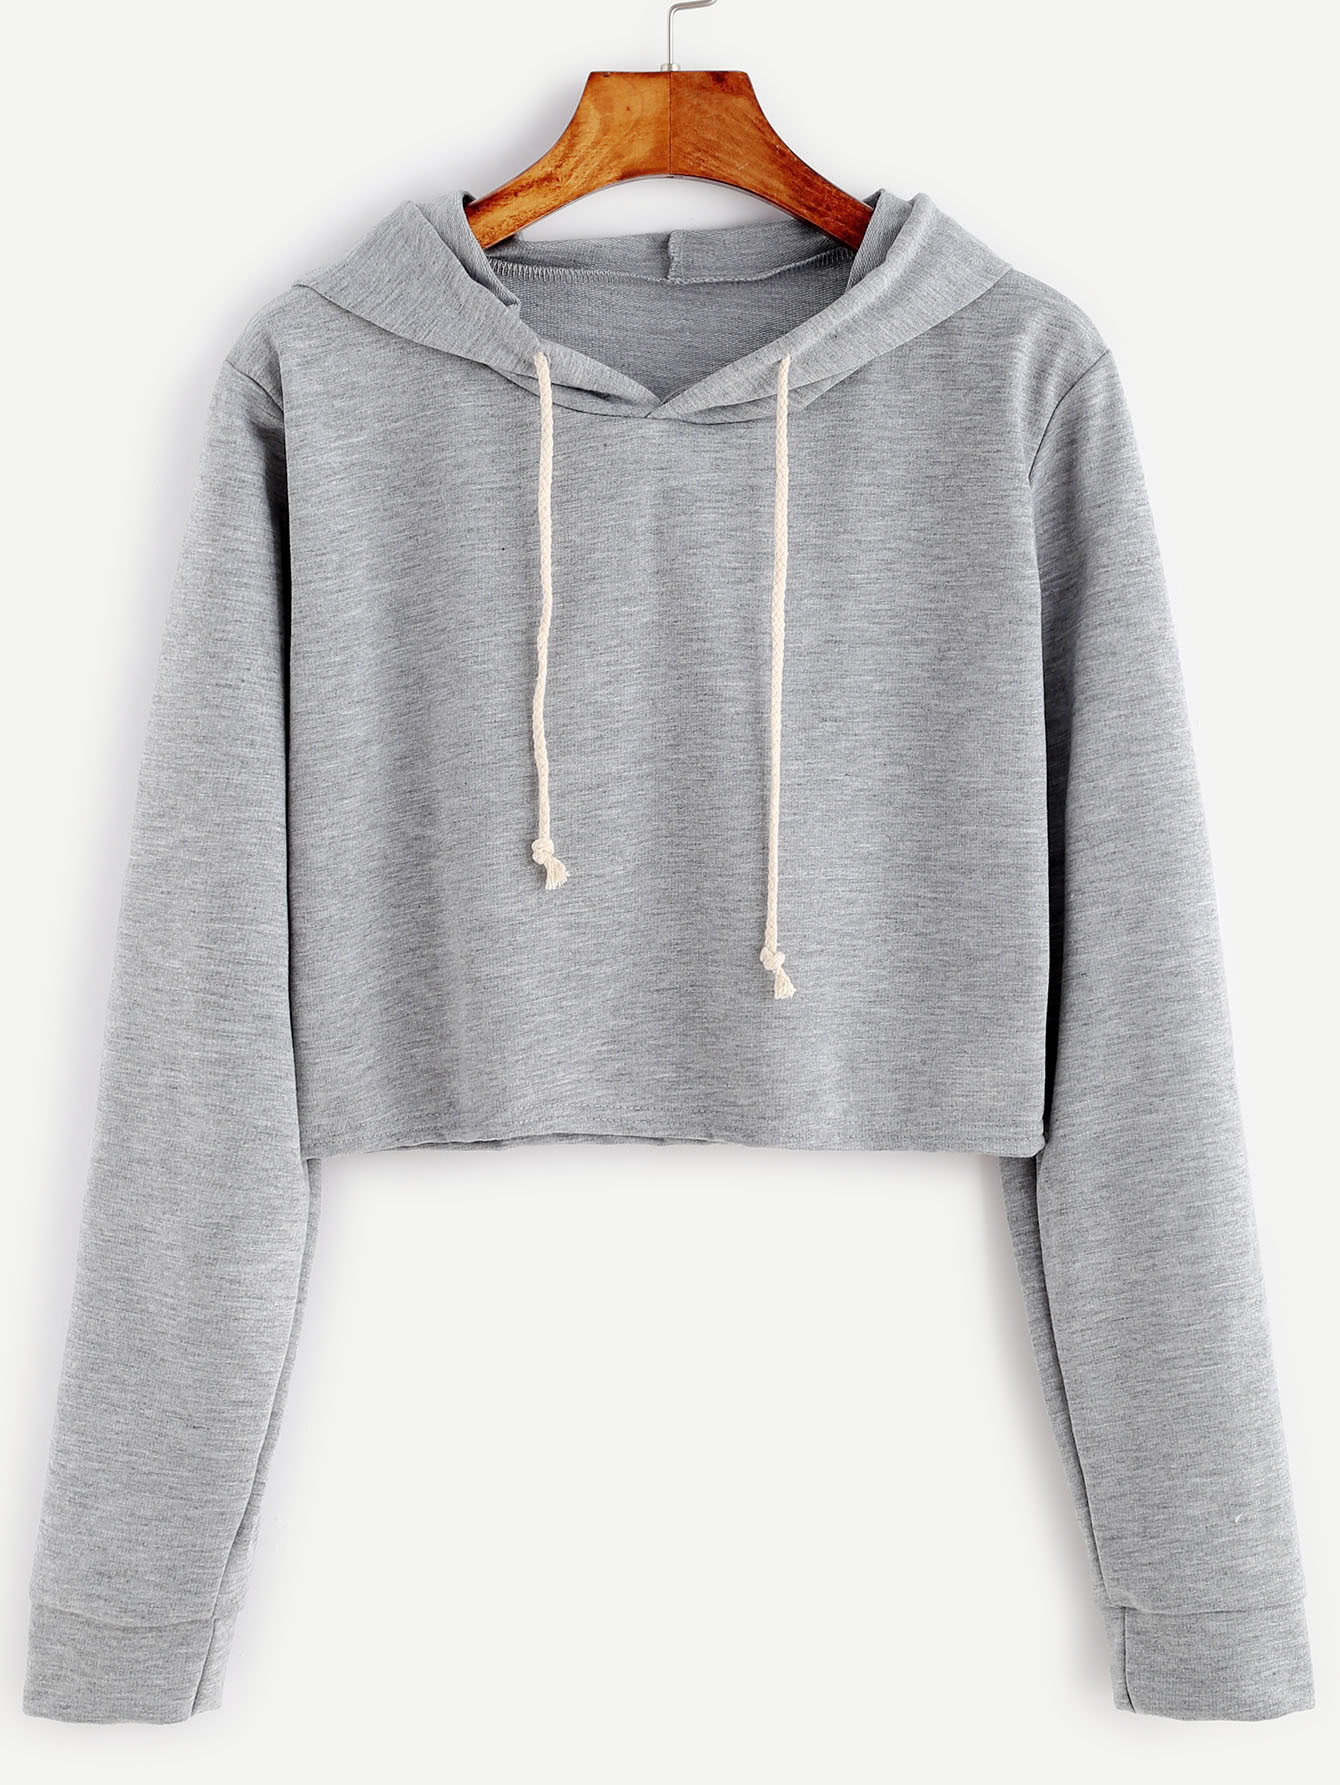 Gap sweatshirts are available in sizes for men, women, girls, boys, baby and maternity. Popular with everyone, our sweatshirts are the latest fashion. Find a sweatshirt in zip front, pullover, hoodie, one-piece baby hoodie and cardigan styles.